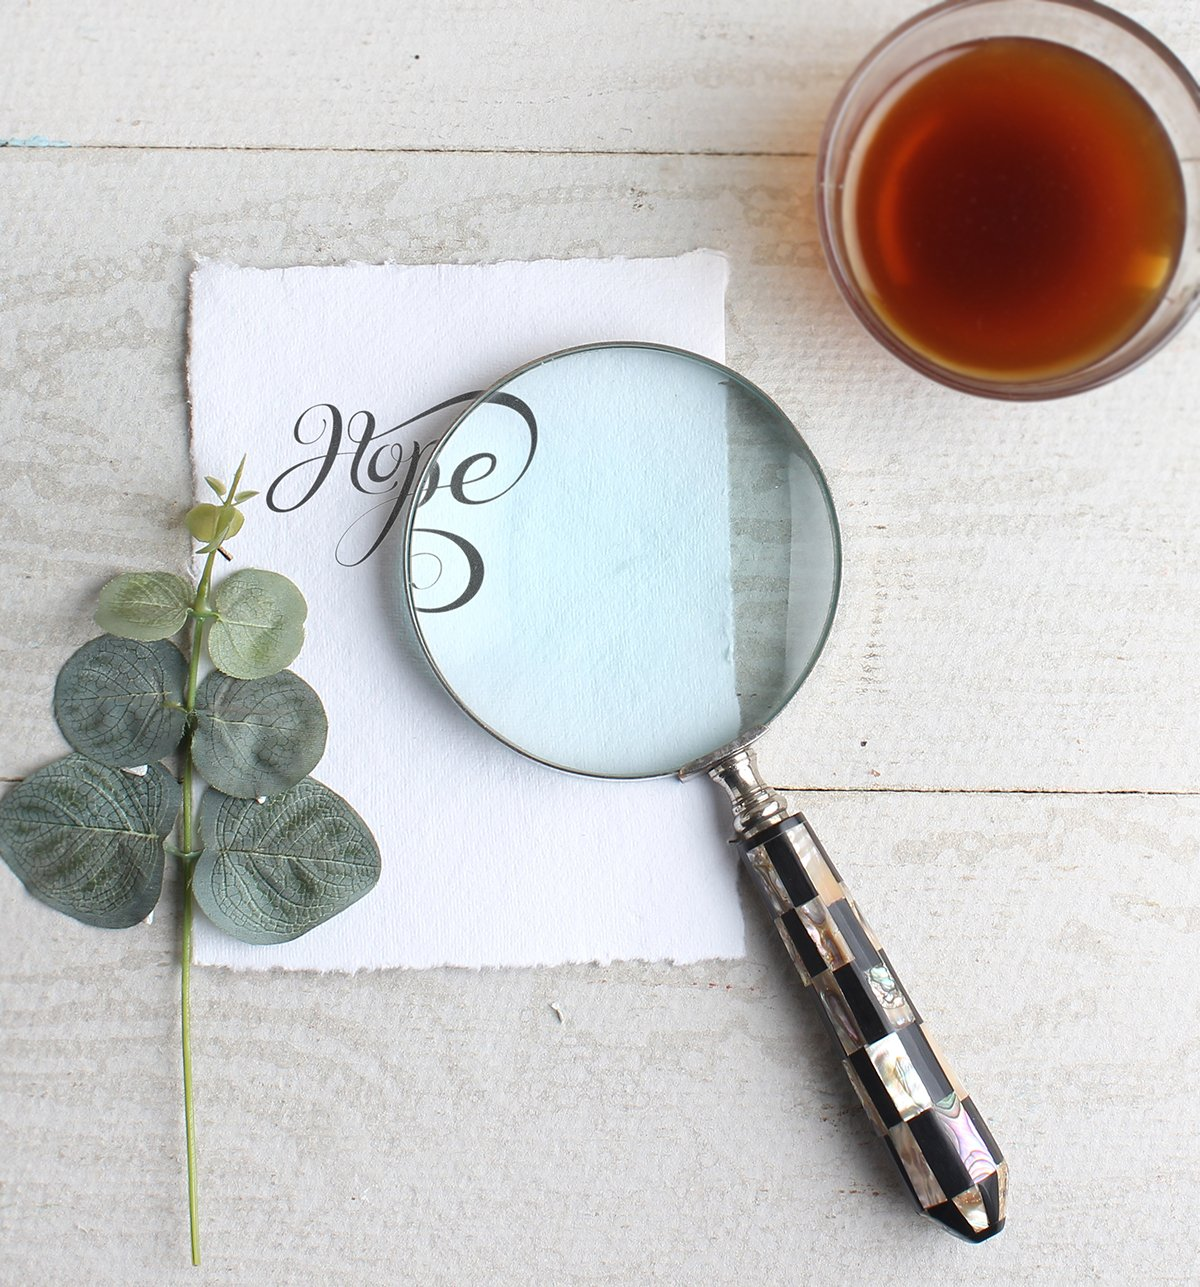 Store Indya – Vintage Magnifying Glass – Handheld Magnifier for Reading Inspection Crossword Puzzles Maps